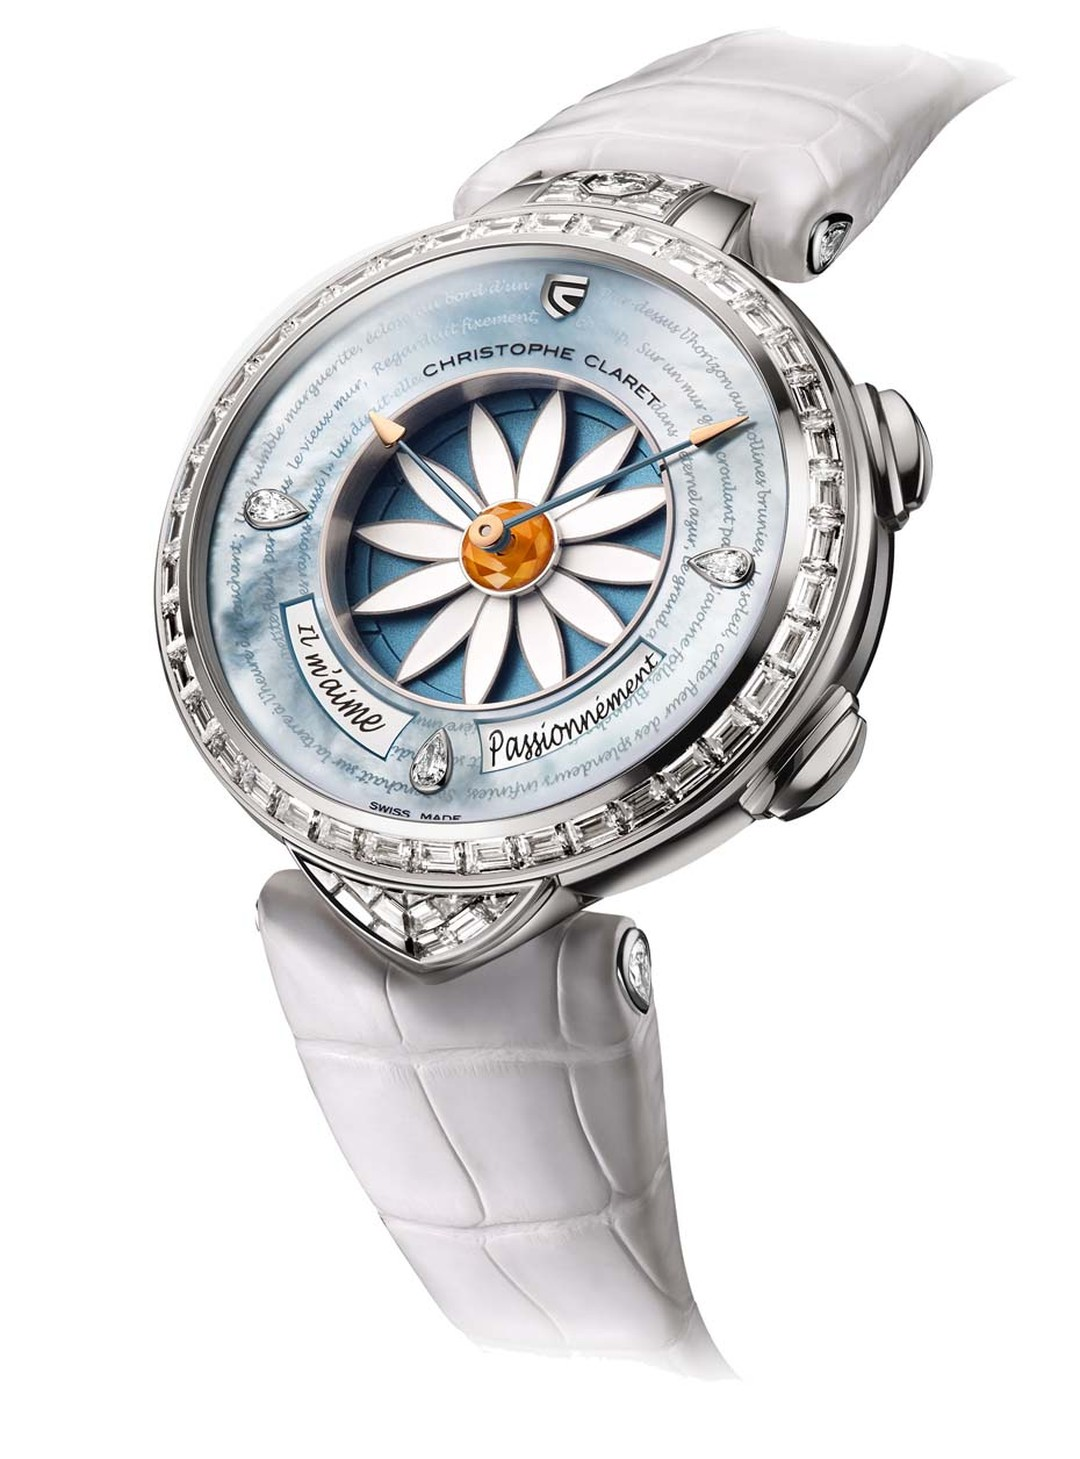 Christophe Claret's Margot watch allows the wearer to gauge the feelings of her beau by playing a game of romantic roulette. By activating a pusher, a petal - sometimes two - disappears under the dial and the answer to your love query appears in a window